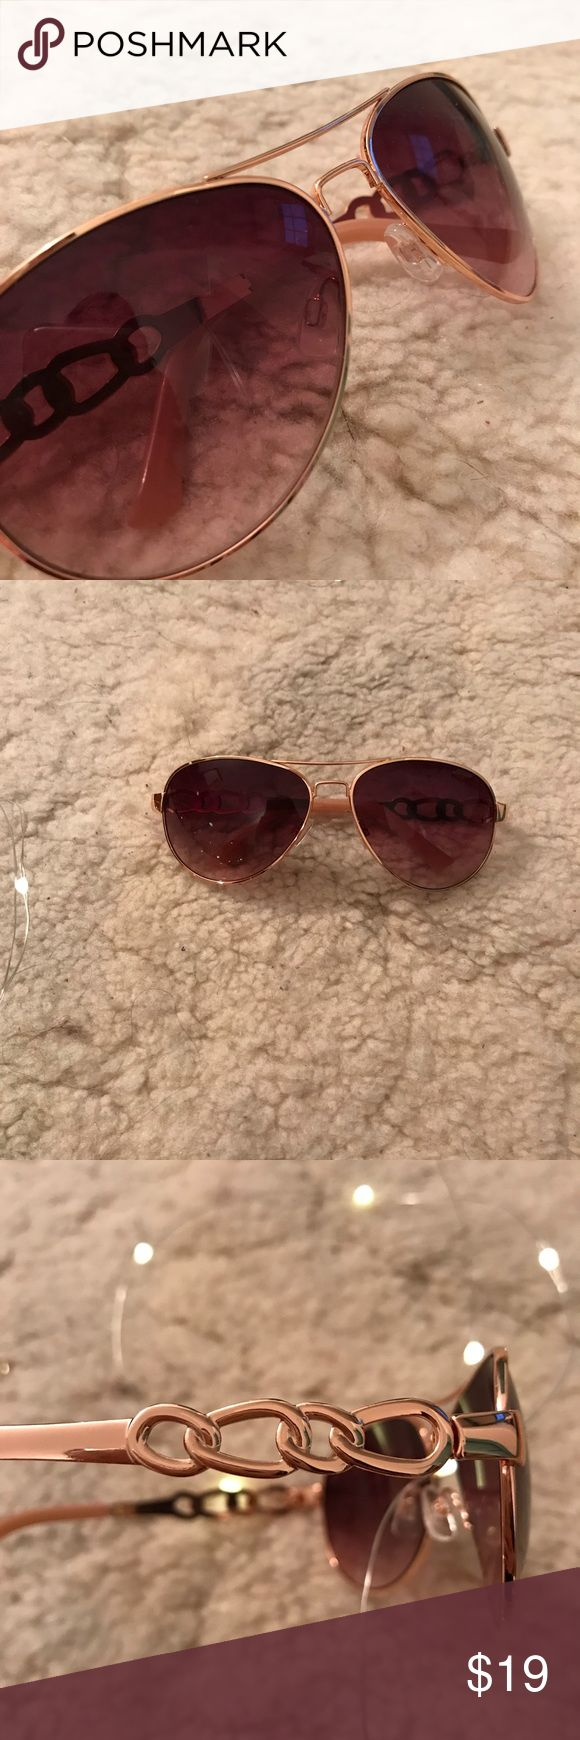 JESSICA SIMPSON sunglasses ROSE GOLD chain NWOT New without tags Jessica Simpson Collection rose gold chain aviator sunglasses. No scratches. Make offers and ask questions!! xx Jessica Simpson Accessories Sunglasses